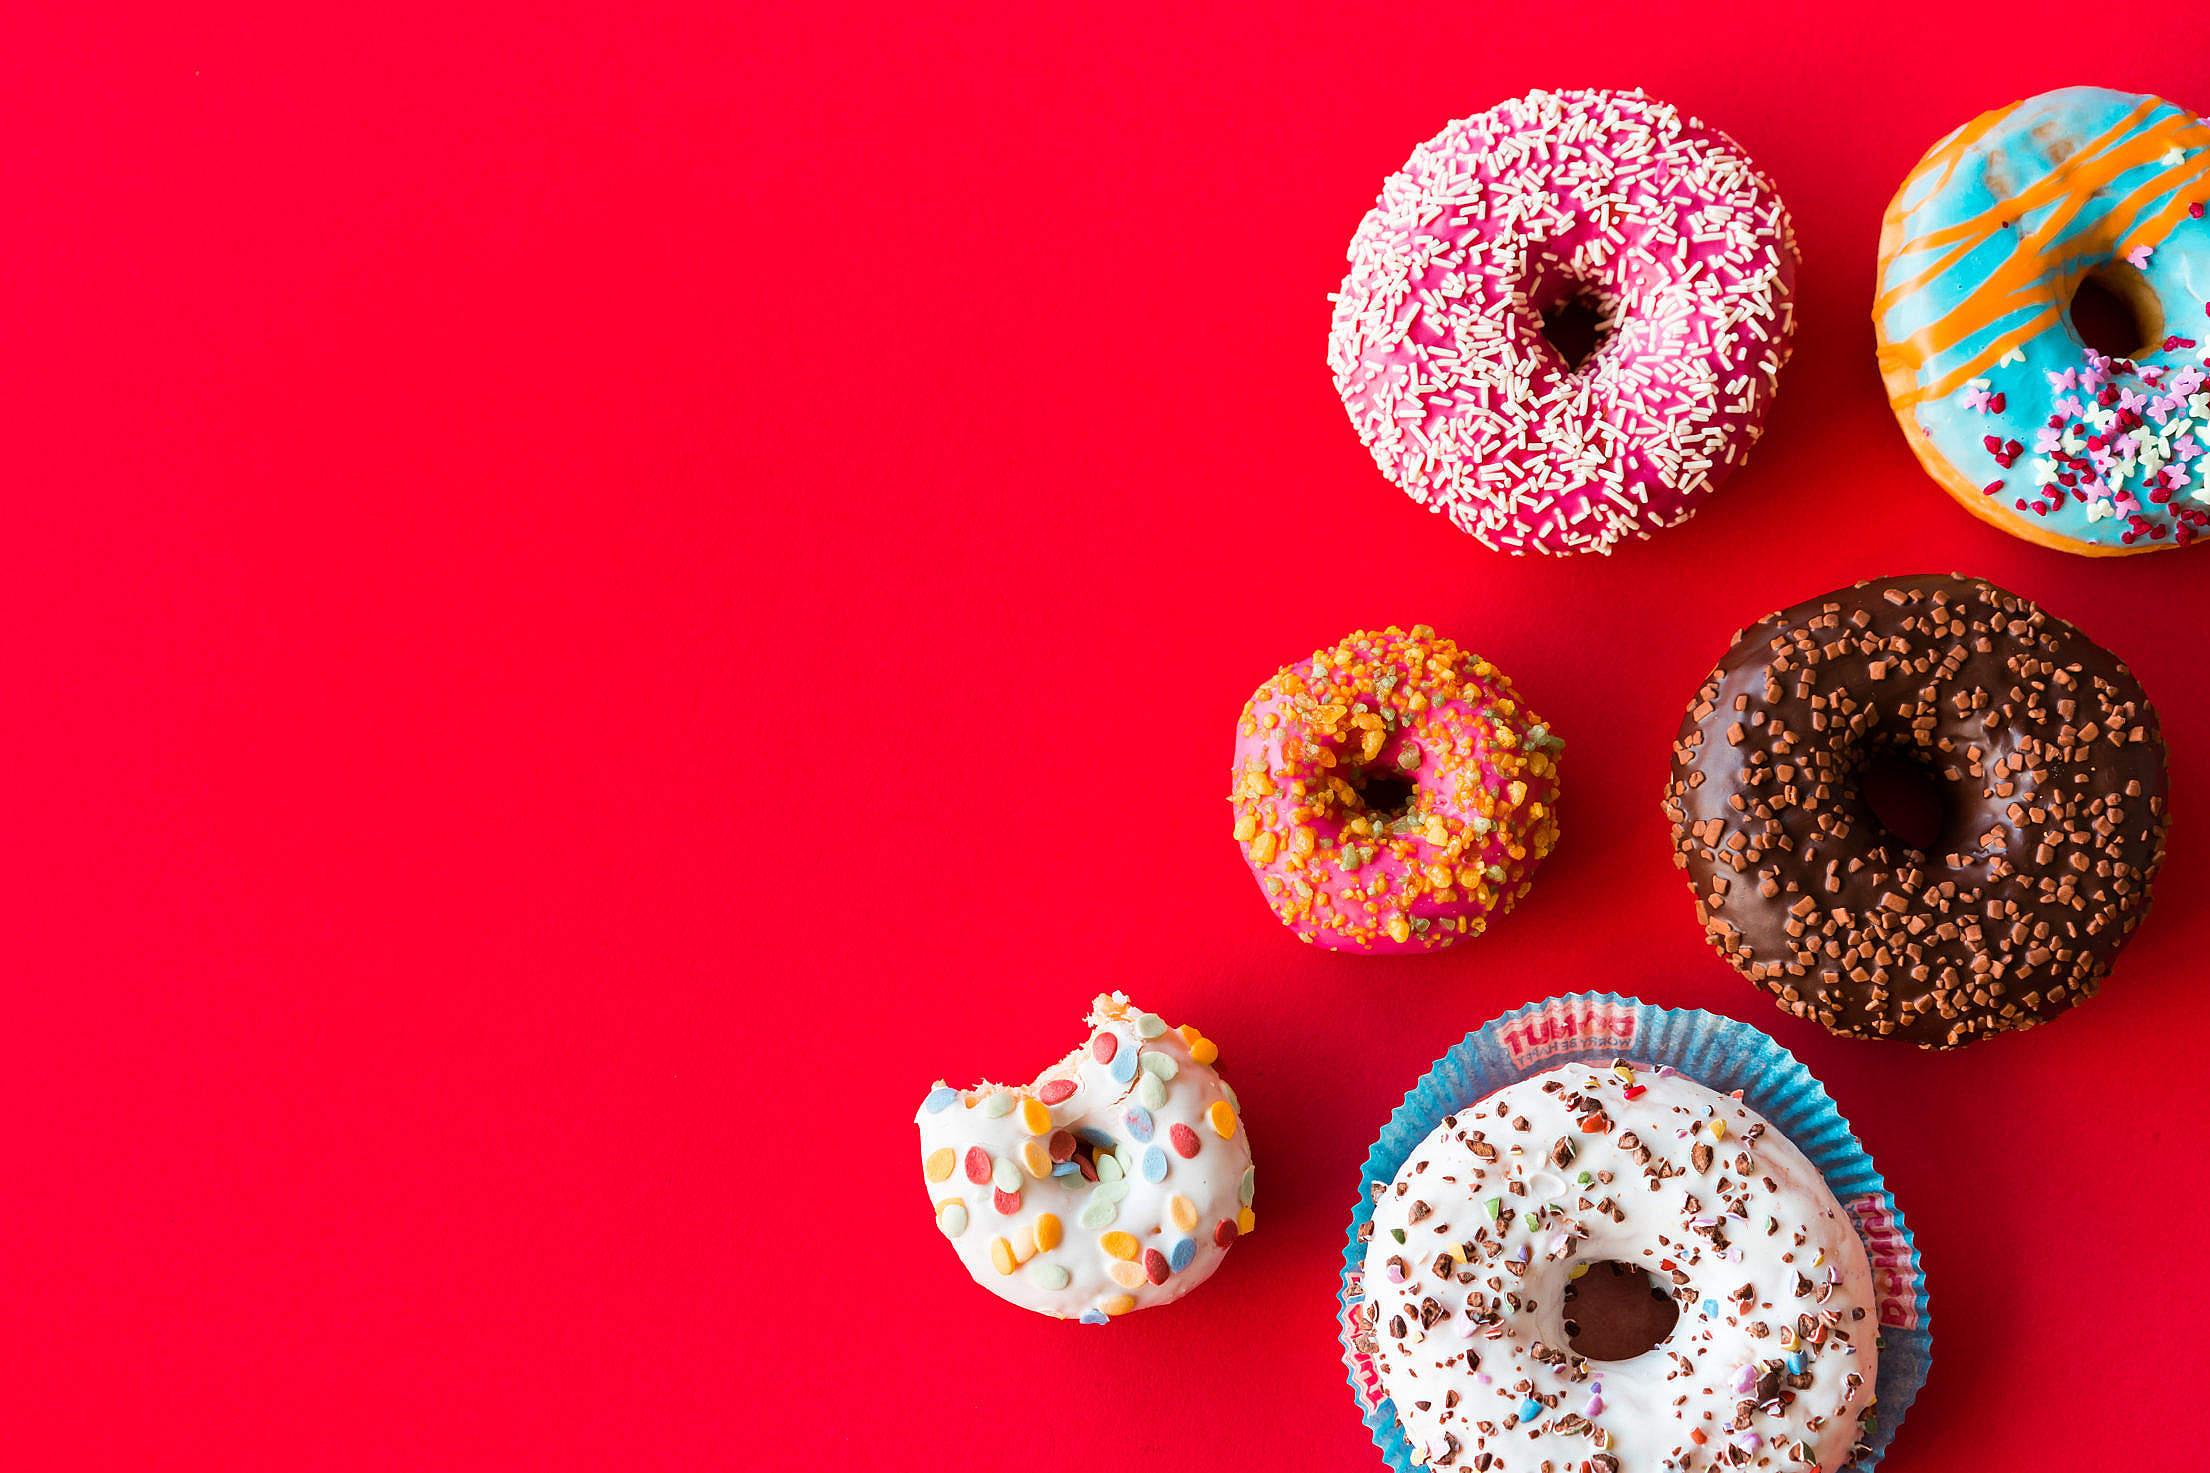 Colorful Donuts Free Stock Photo